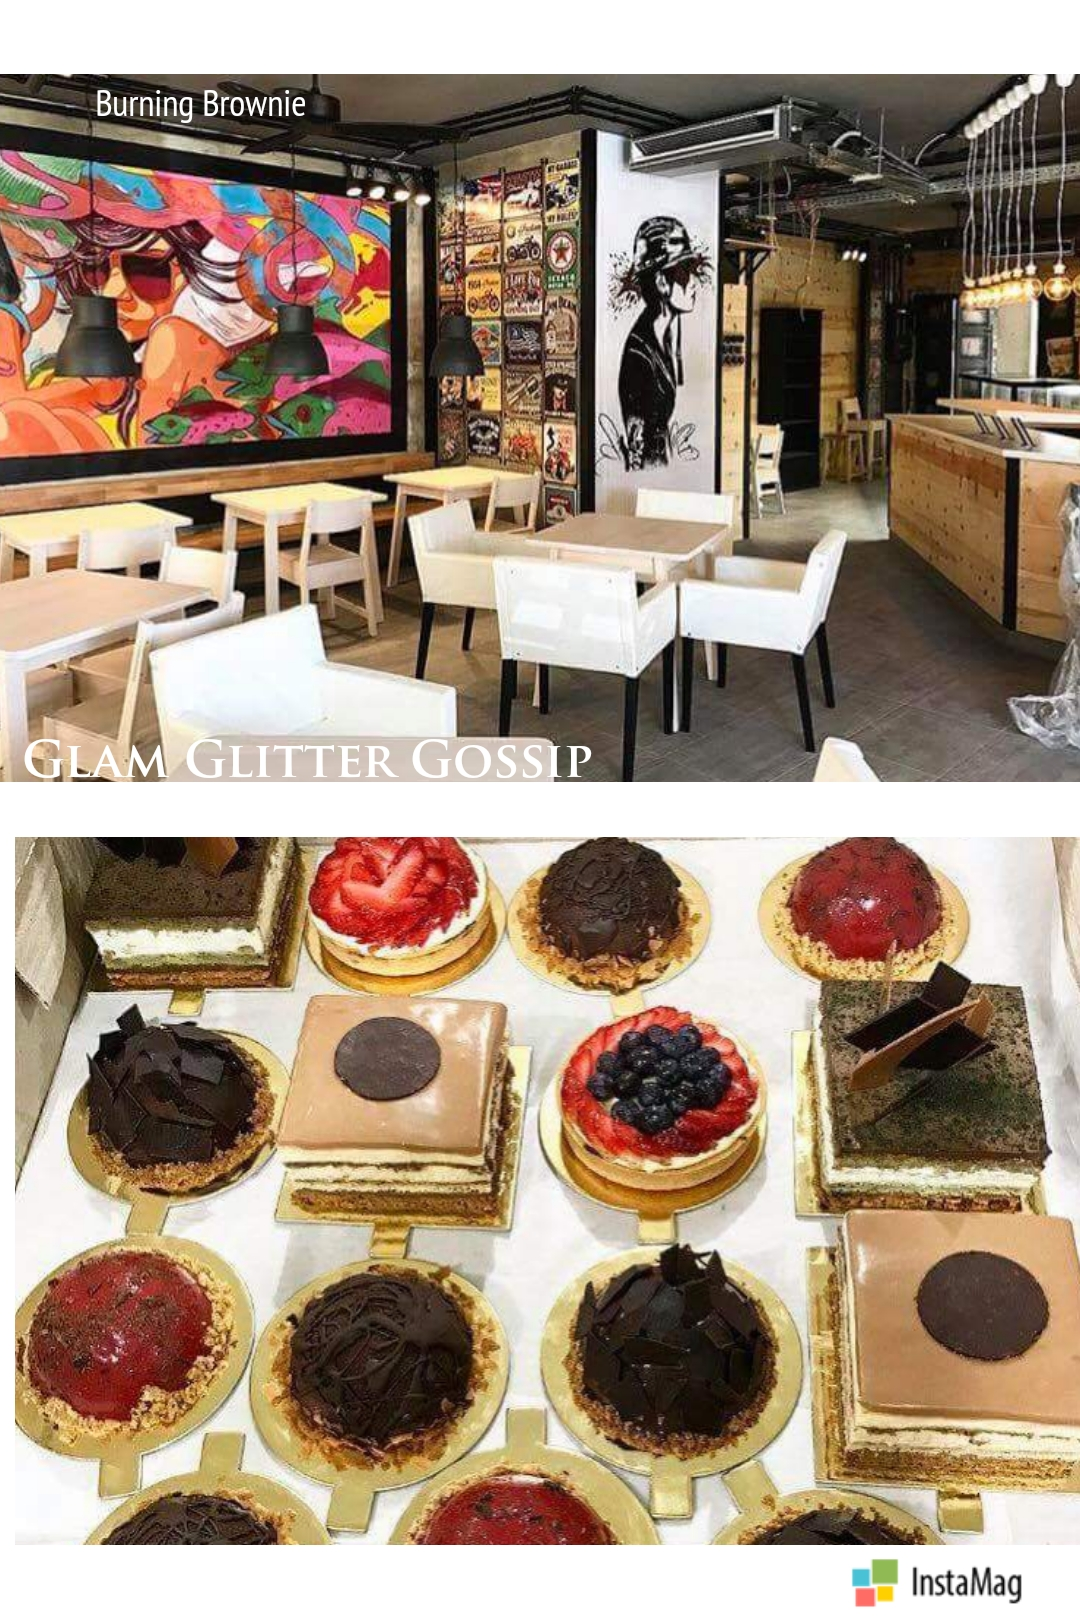 Burning Brownie Cafe Islamabad, Ten Best Cafes In Islamabad Review And Pics